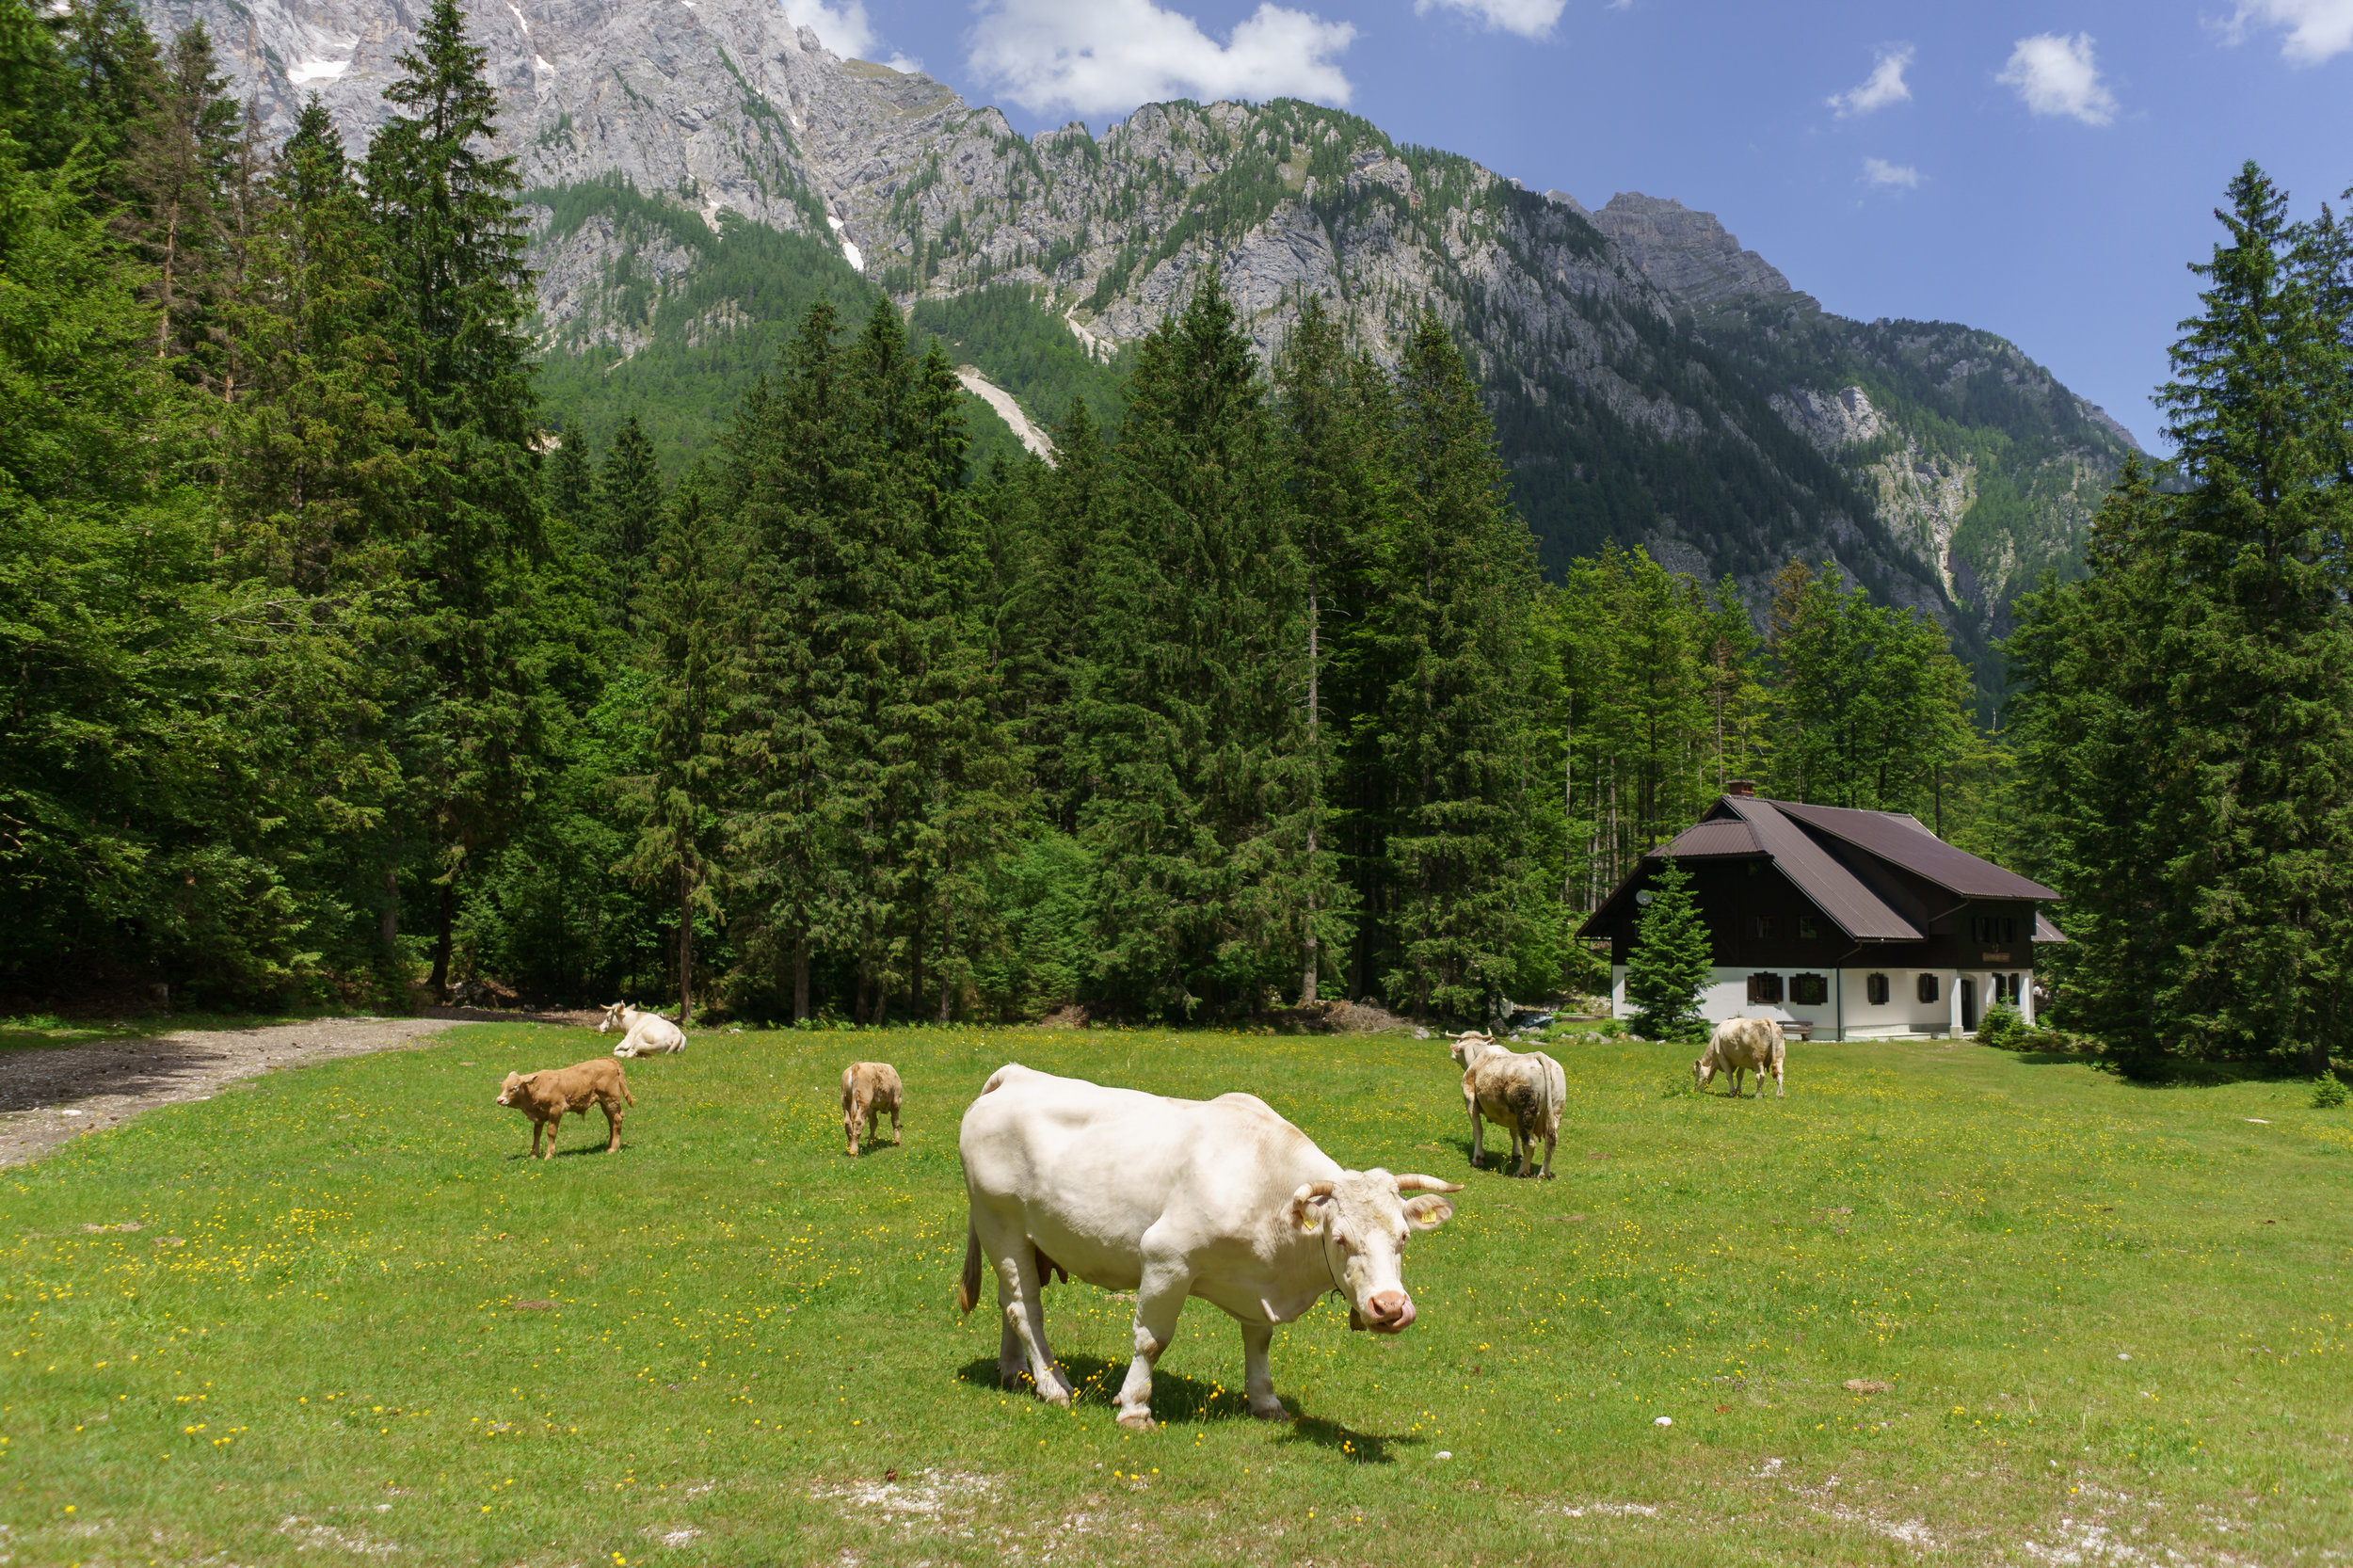 Cows in the Vrata valley.